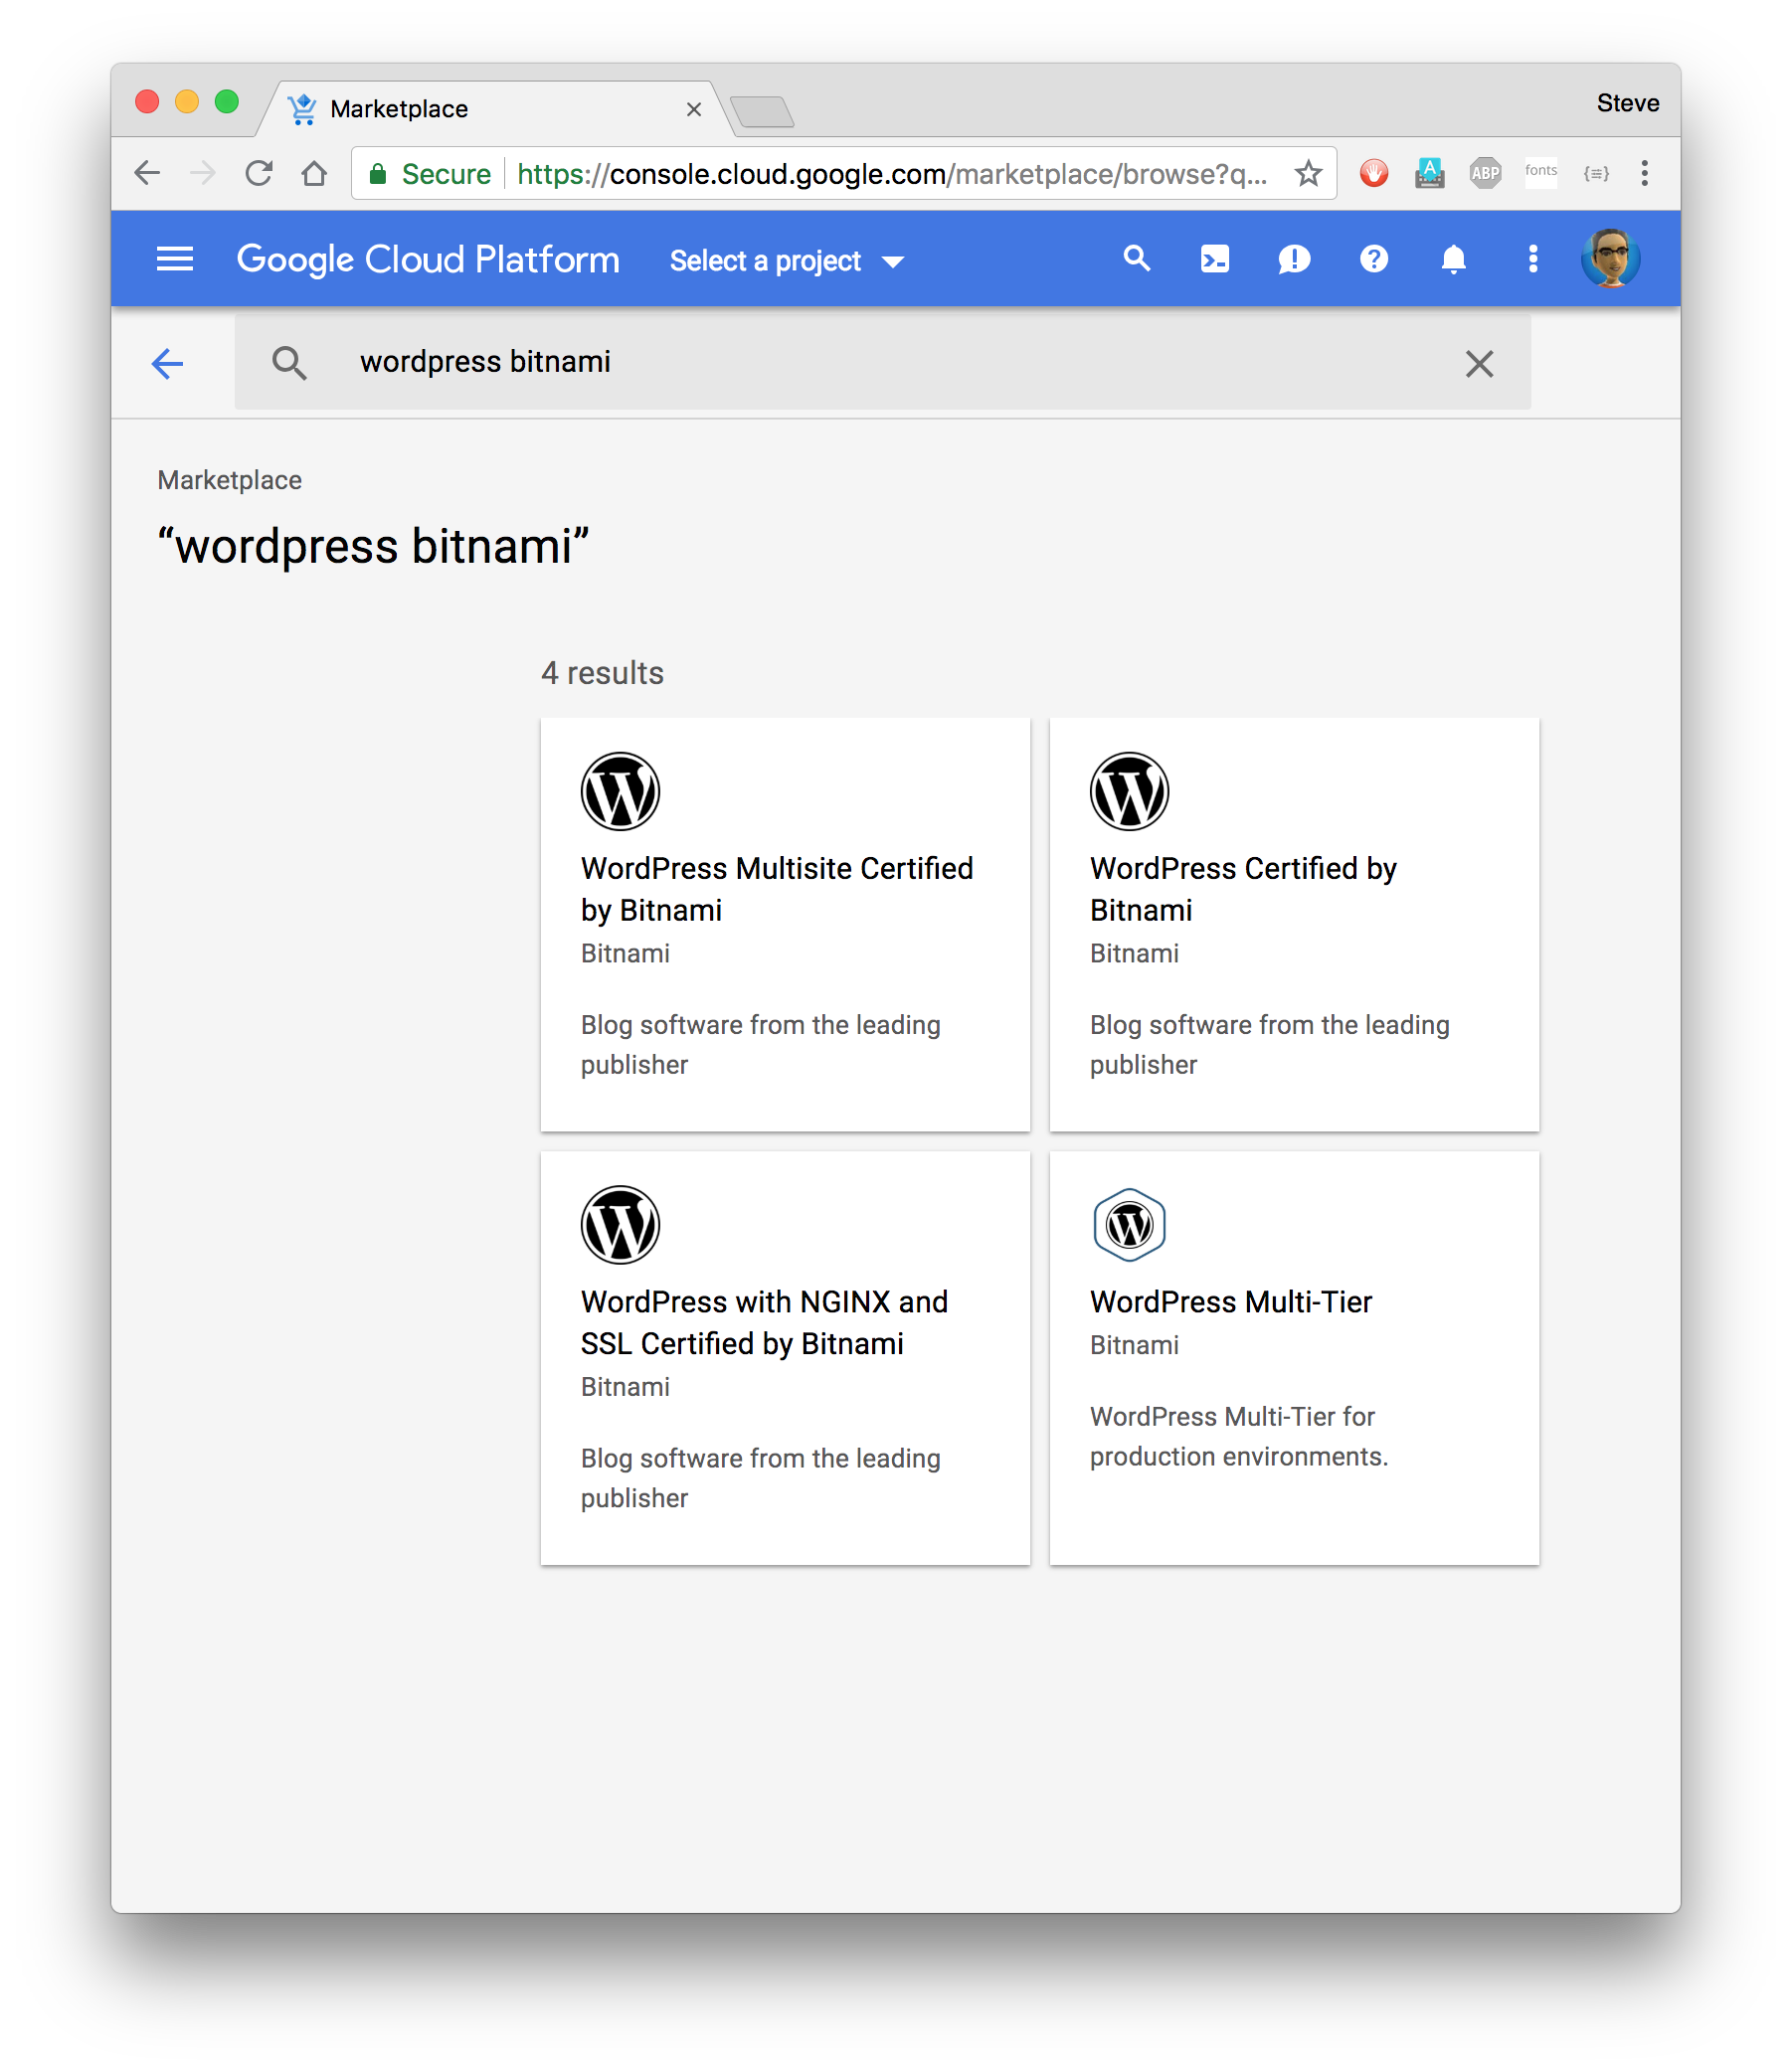 升級/轉移WordPress in GCP marketplace | HanG321 Blog